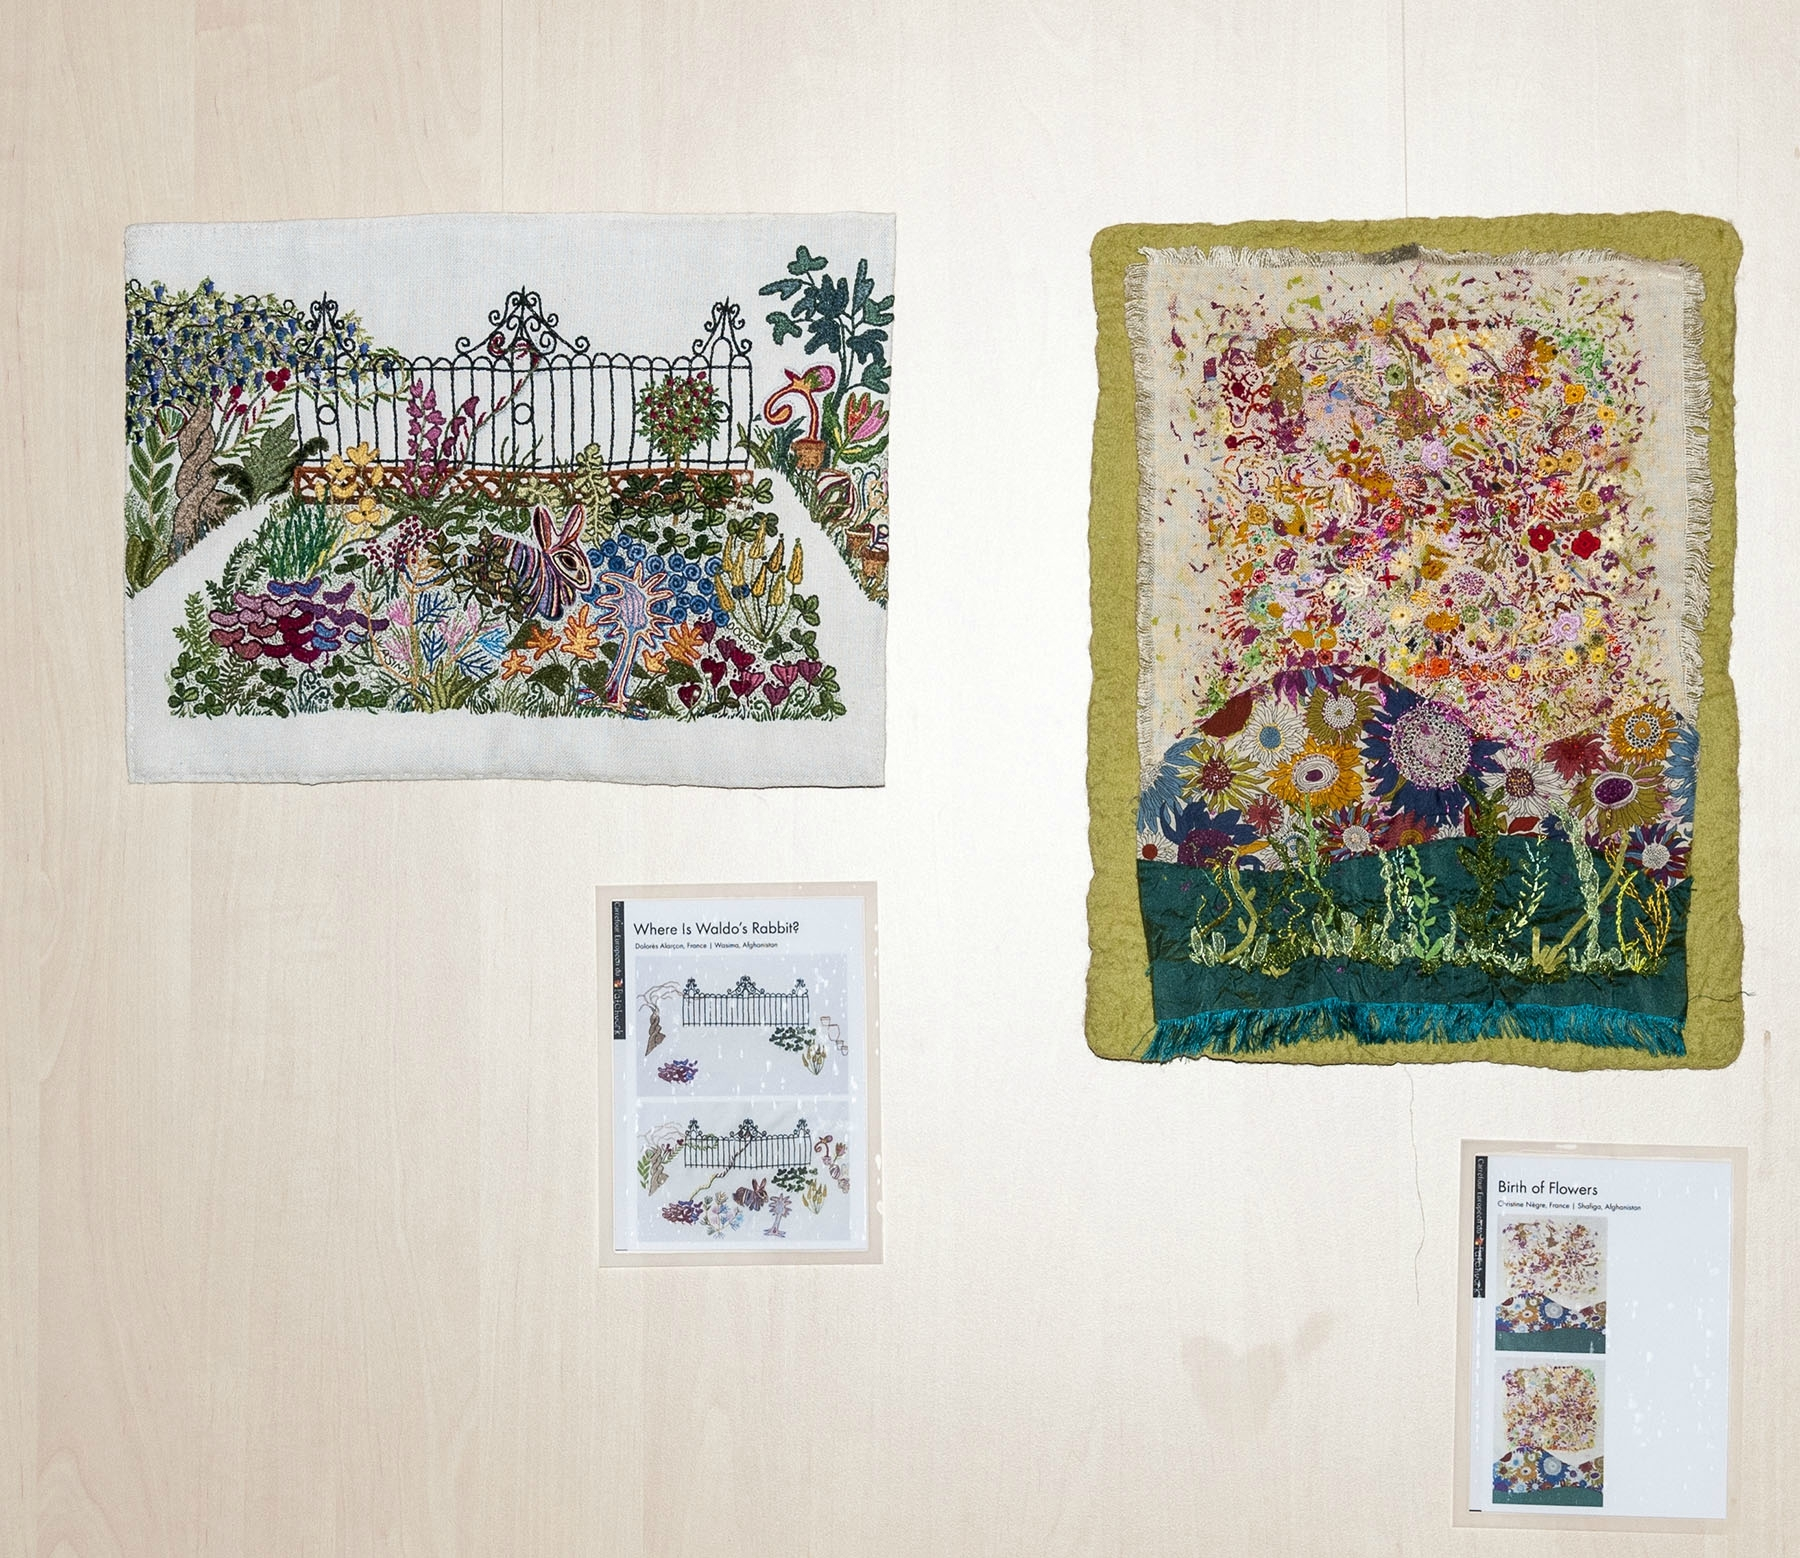 17052017-2017-05-17_19-03-46-Gardens Around the World et broderie Afghanne-QES 2017